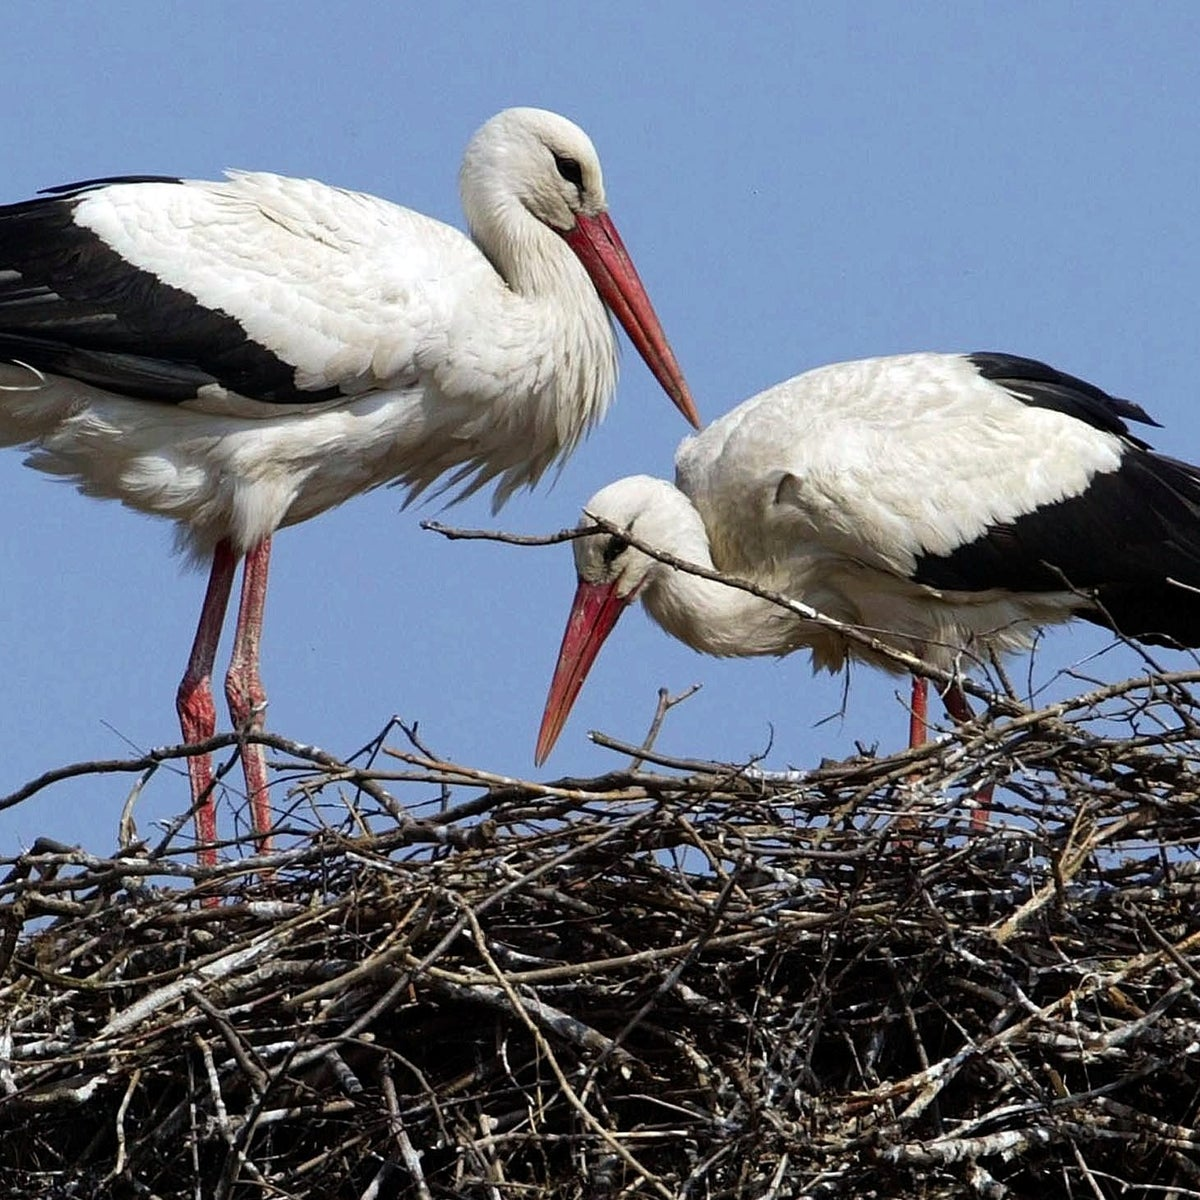 Storks: Kosher or not?